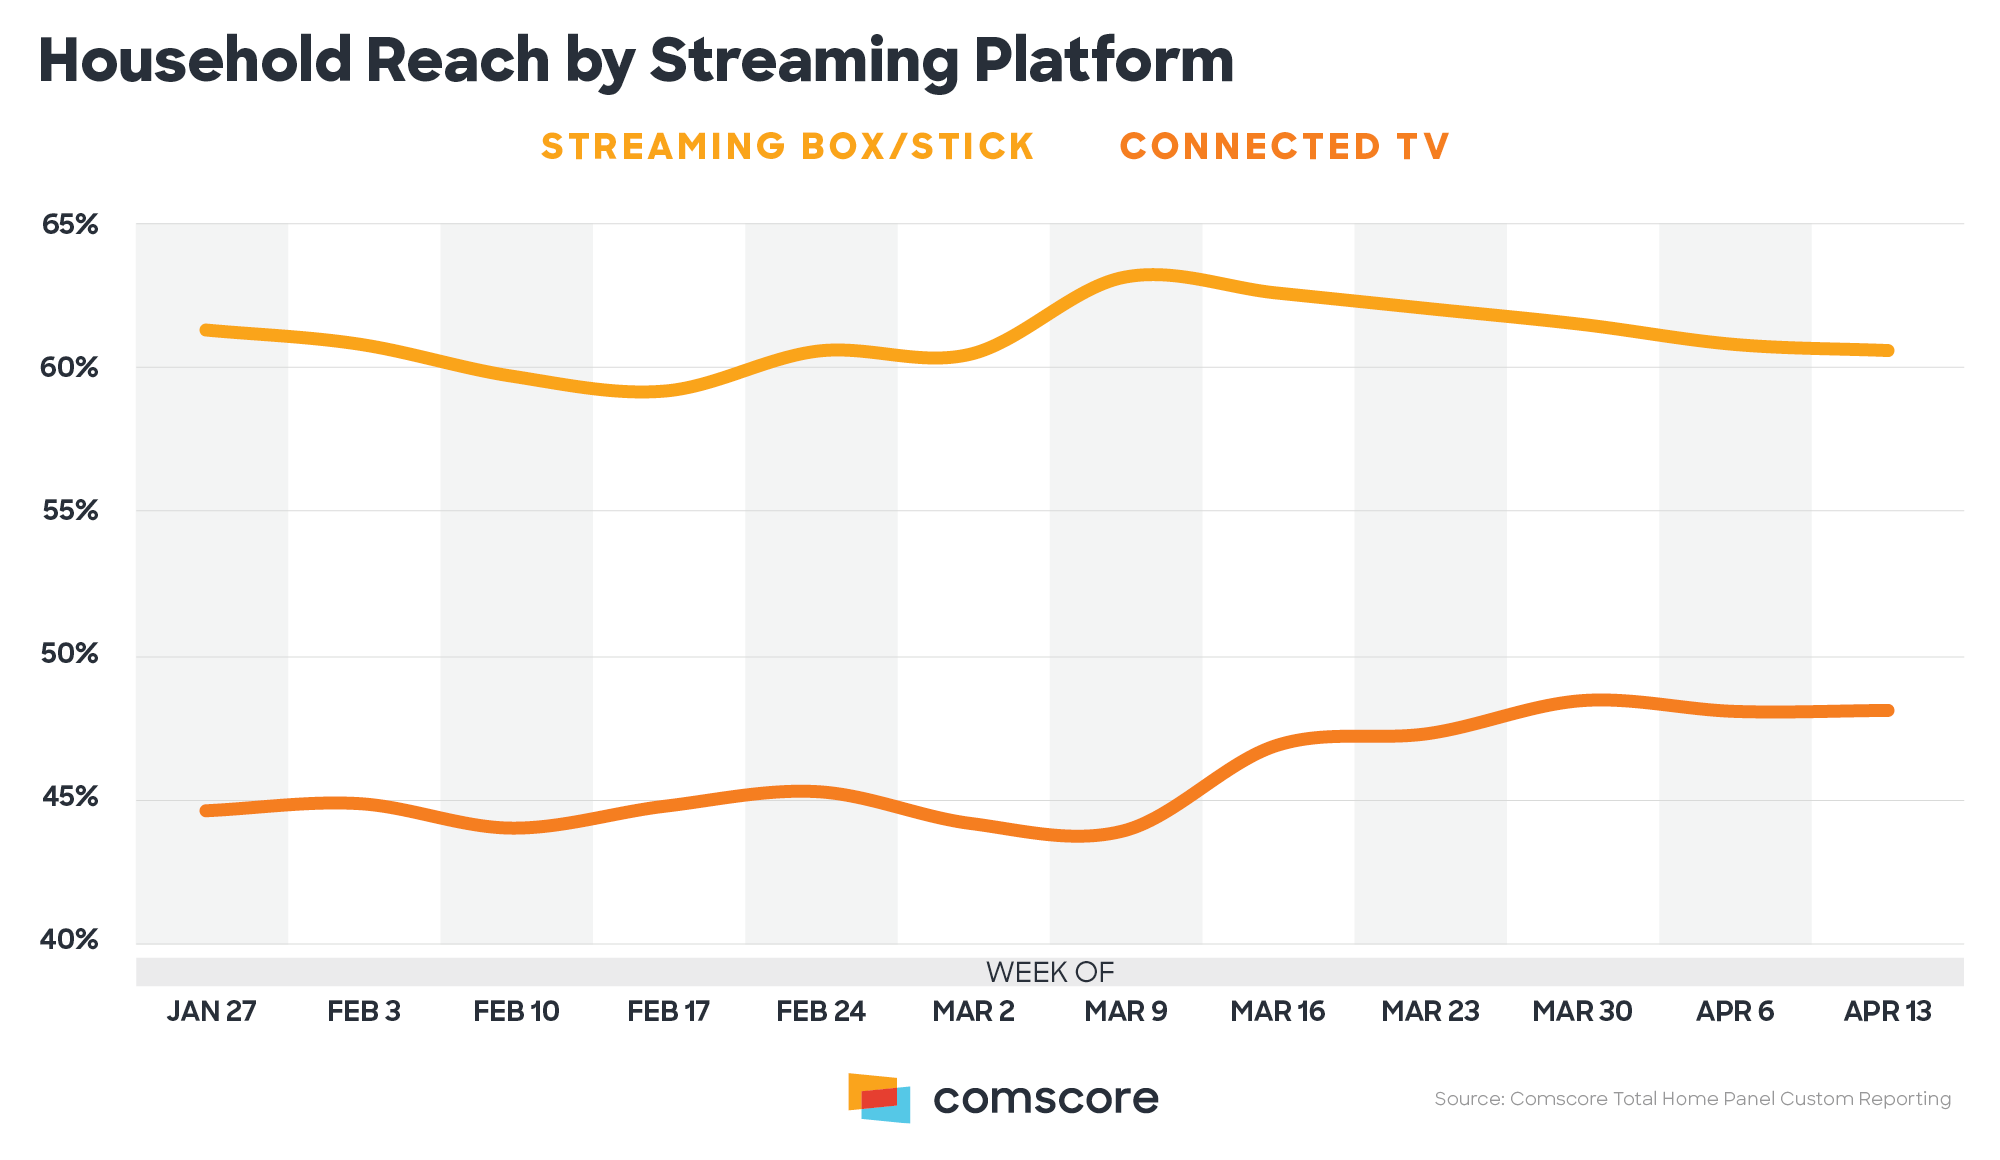 Household Reach by Streaming Platform